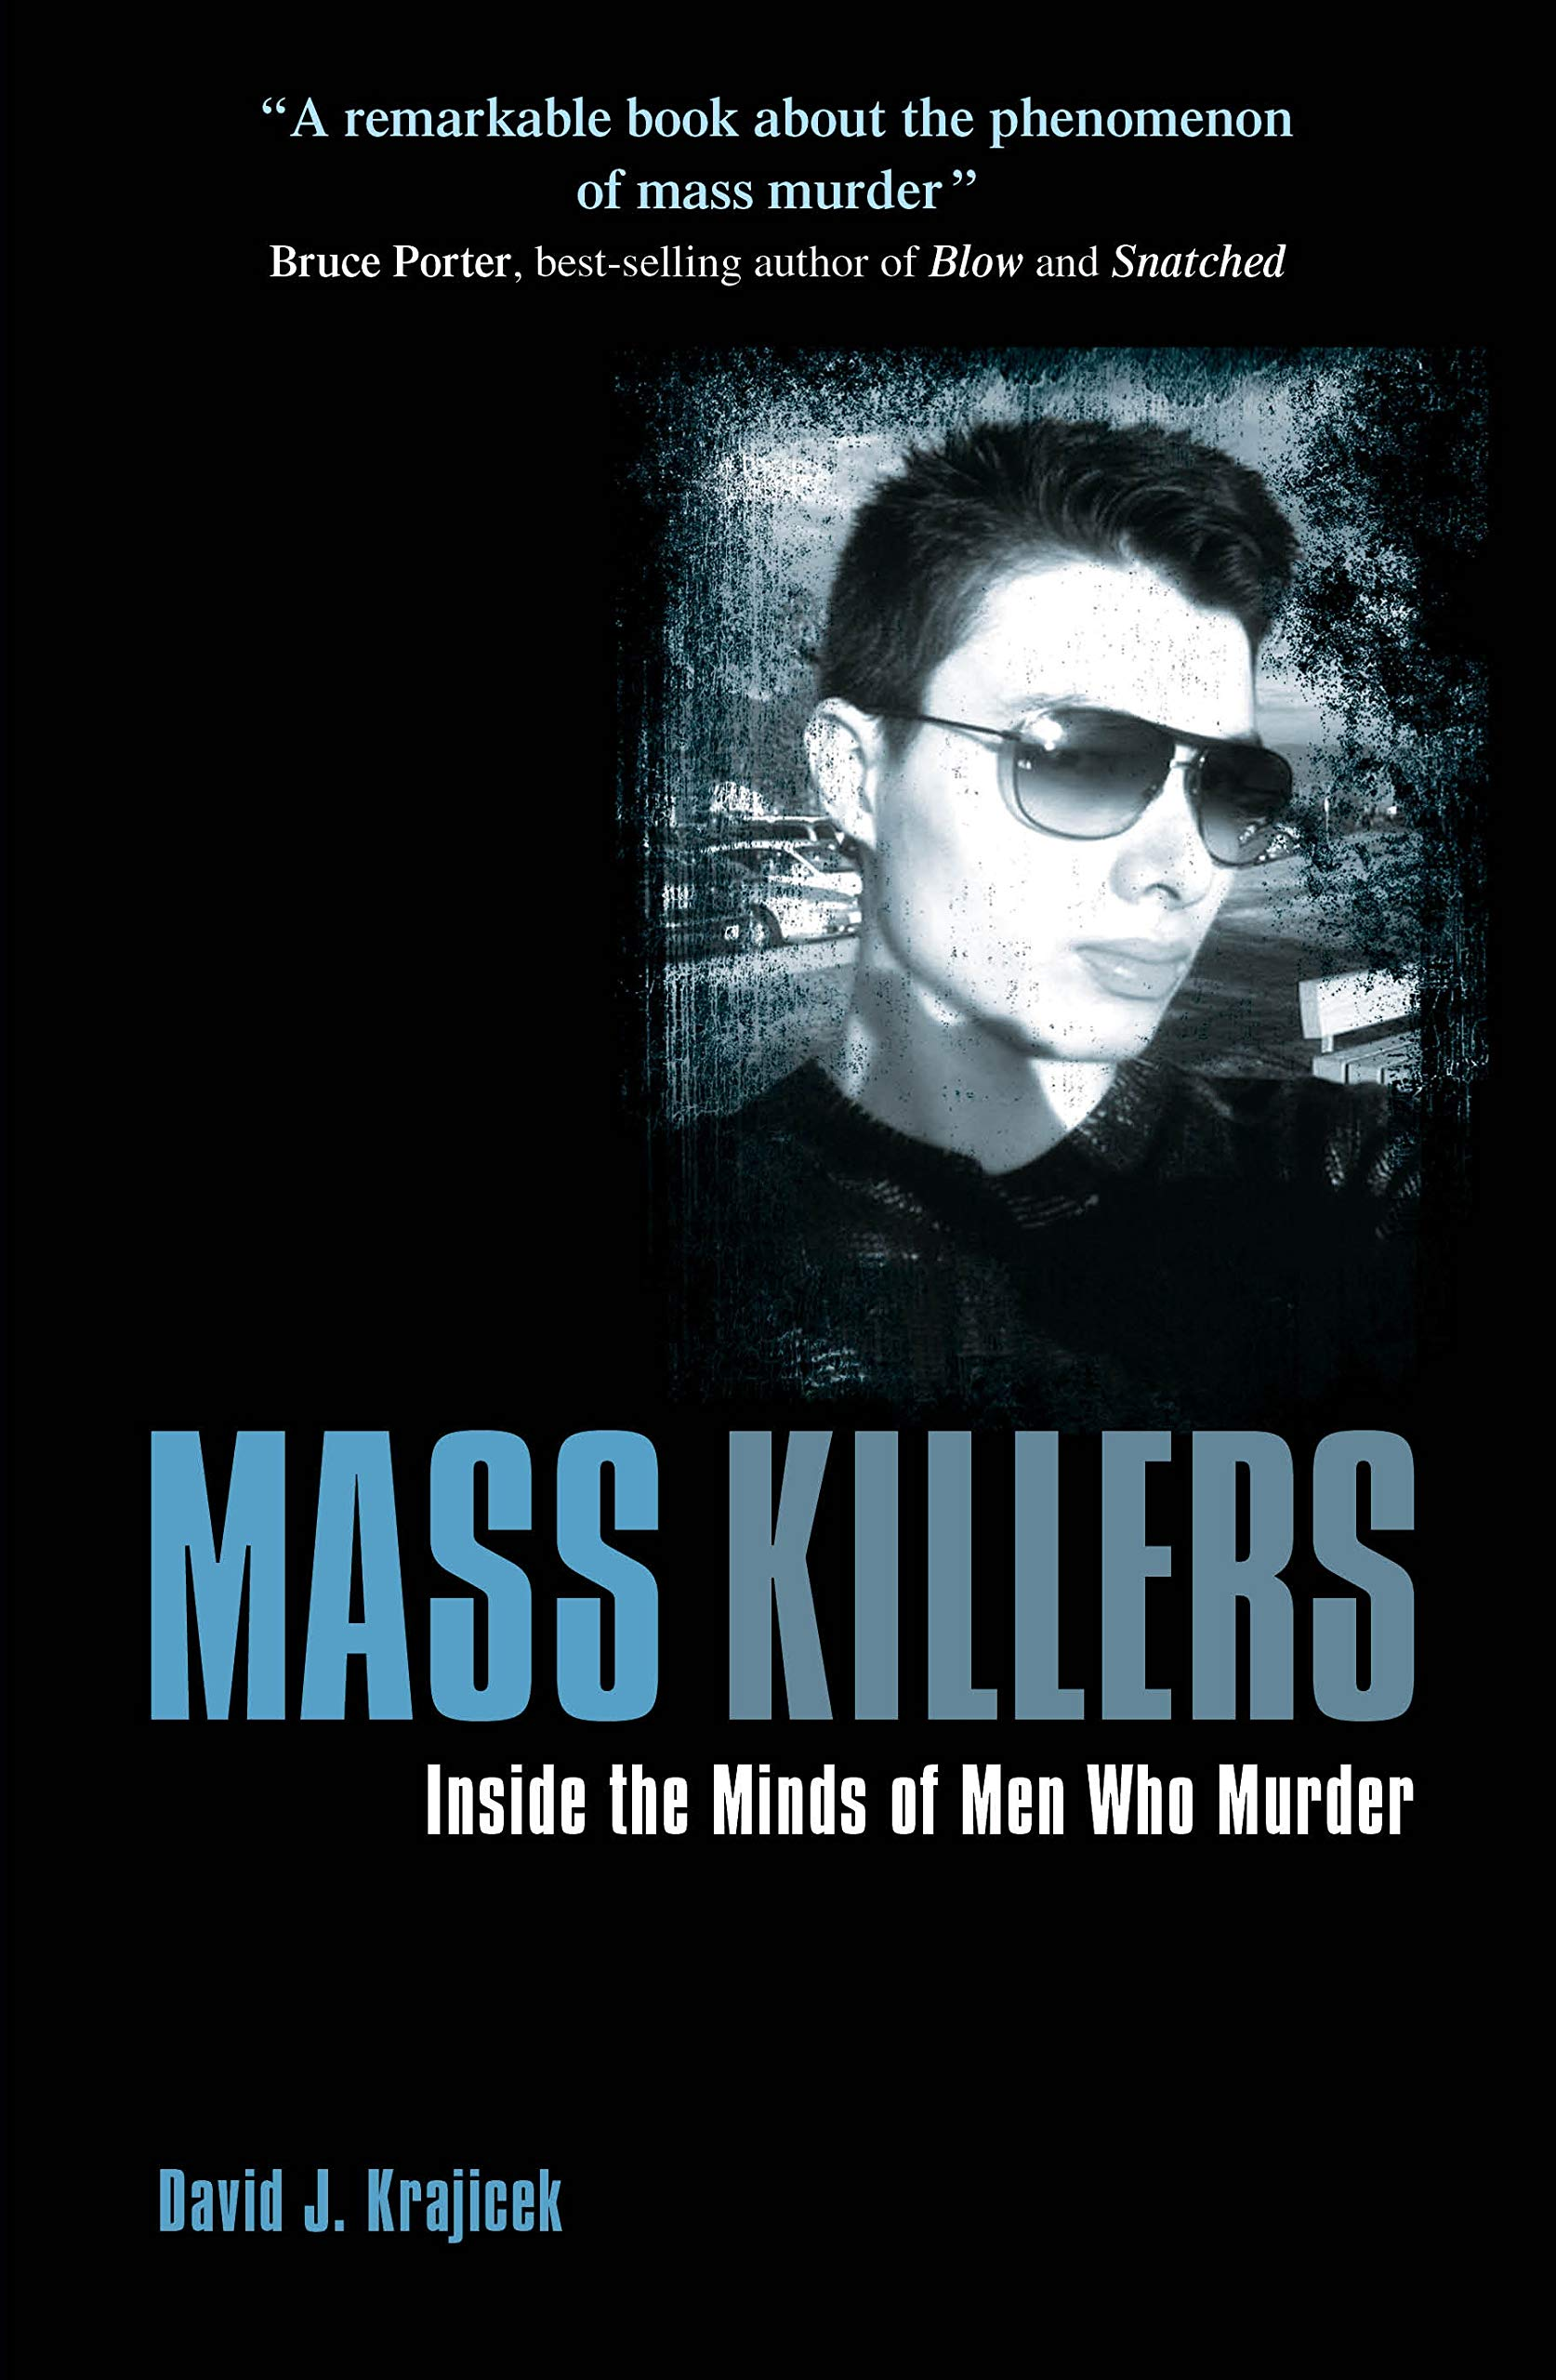 Image result for MASS KILLERS book